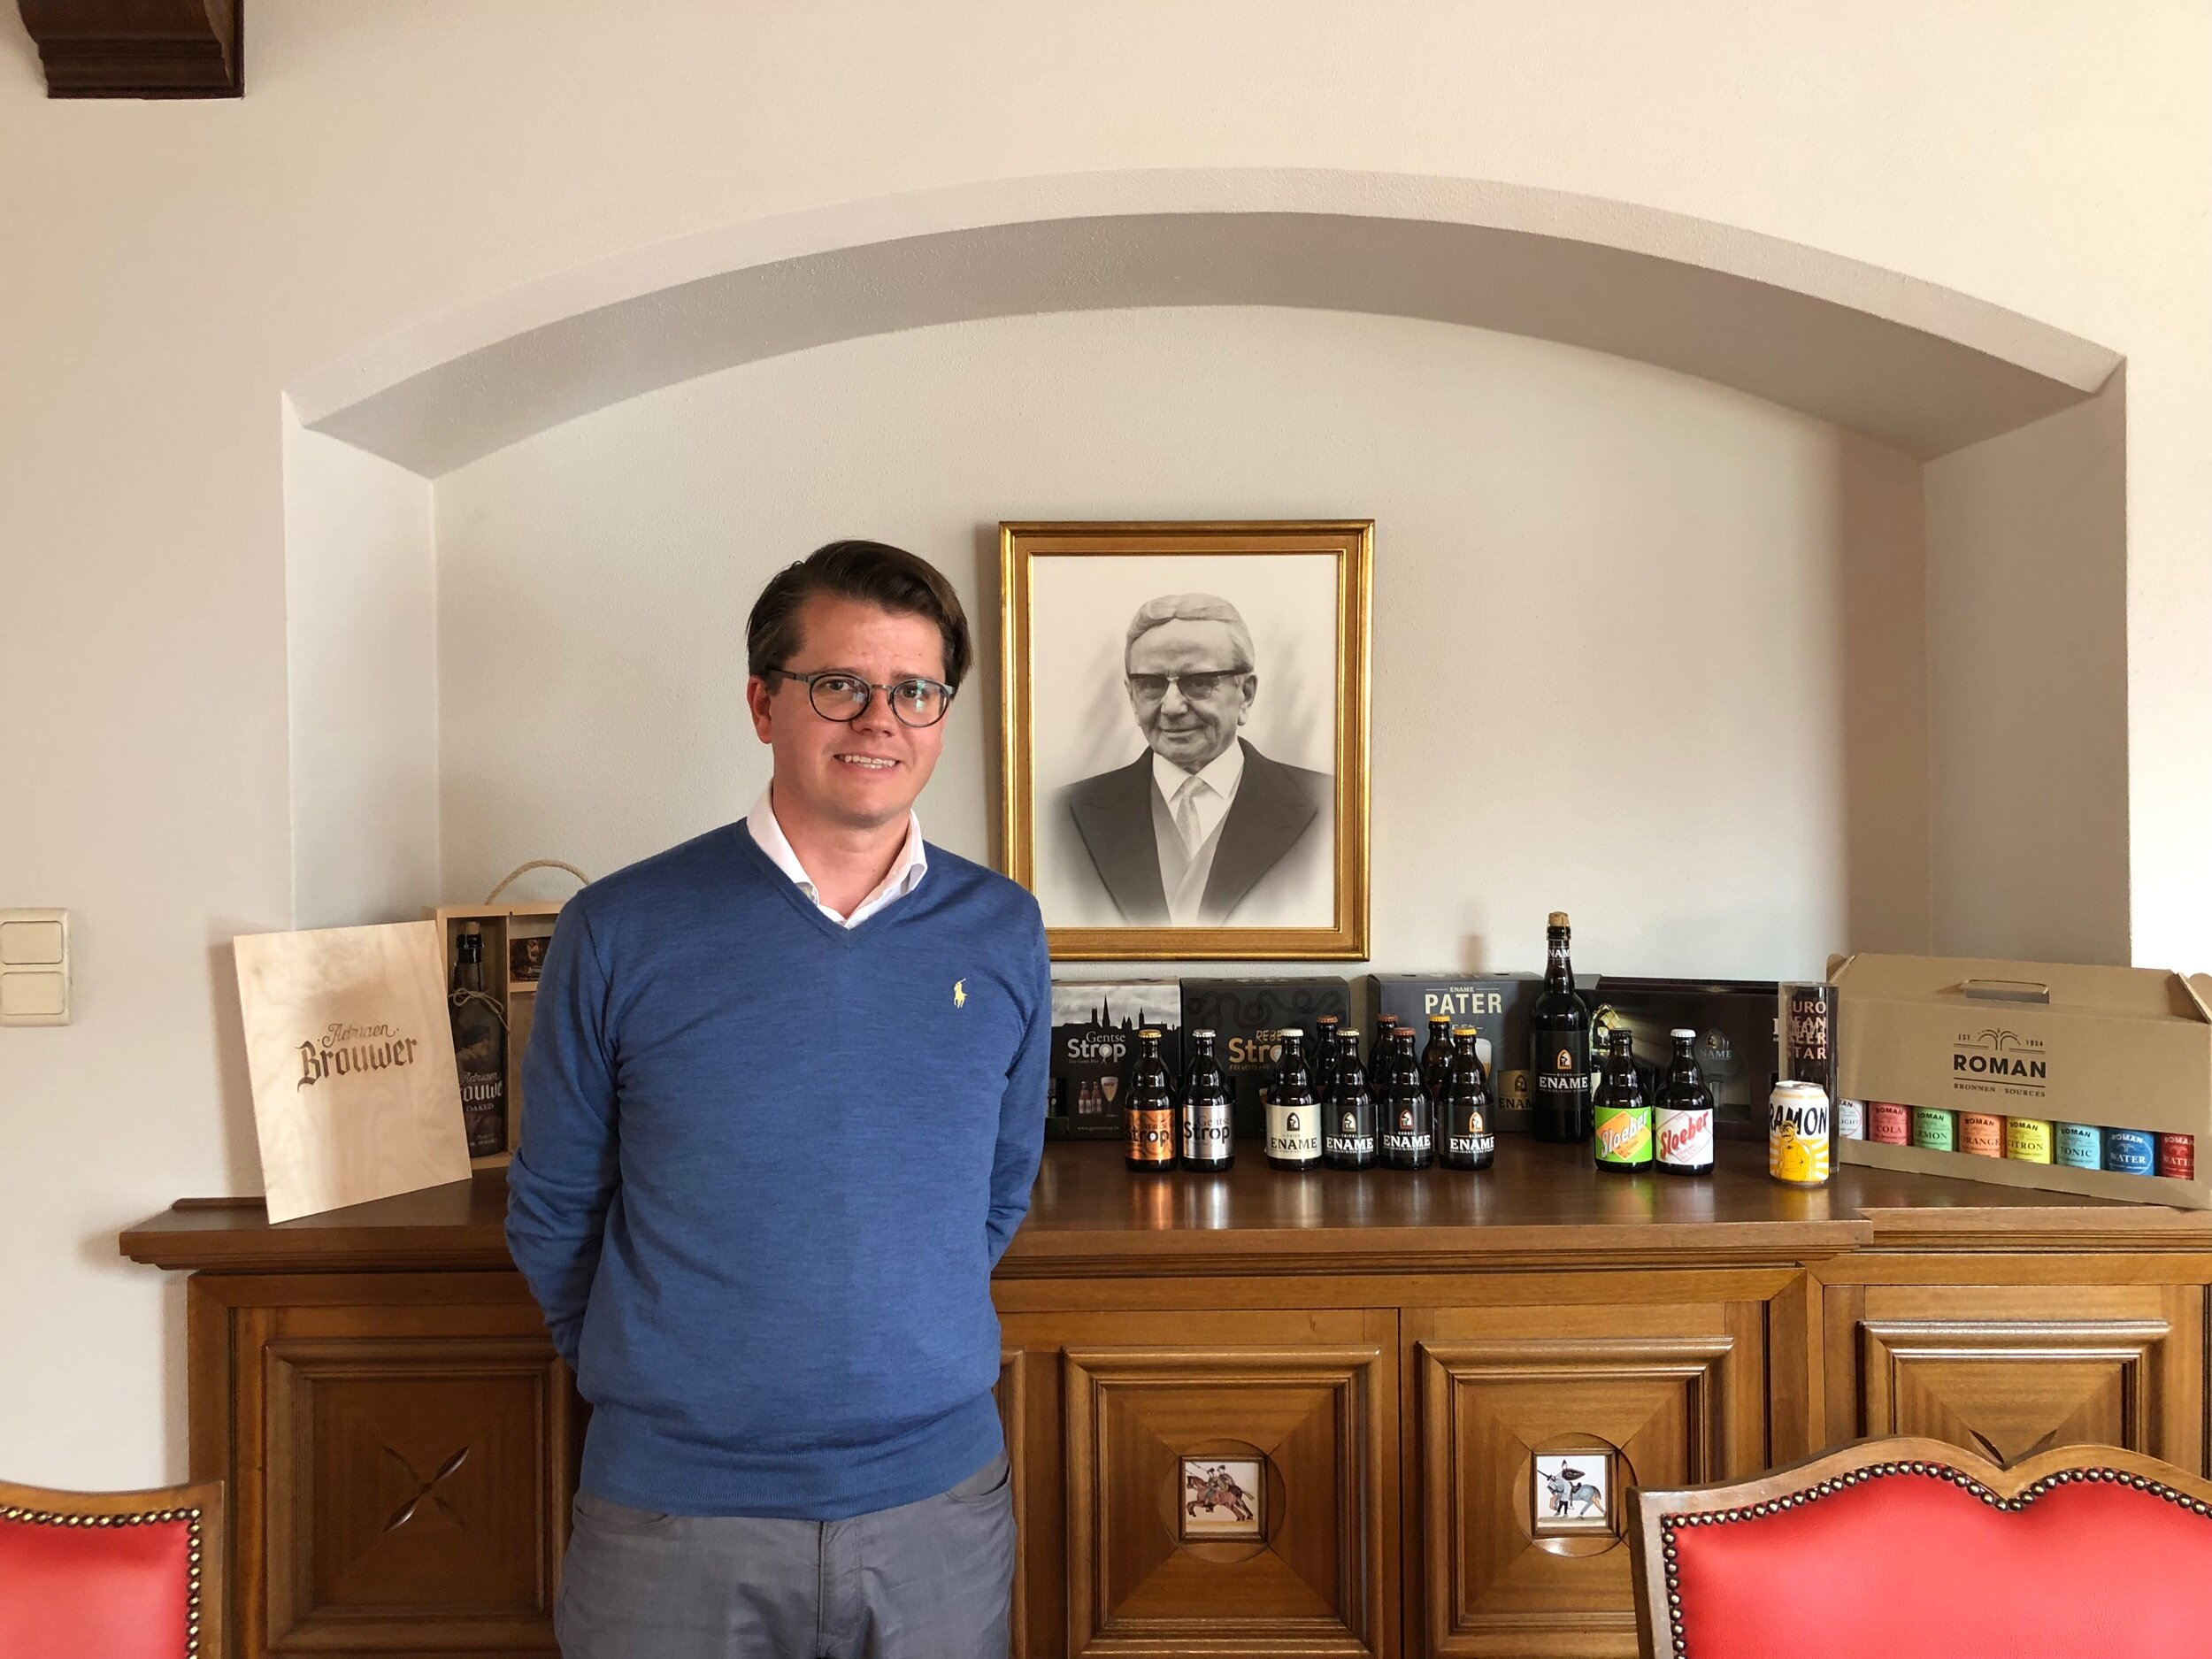 Lode Roman, a member of 14th generation the family can trace back, and the third generation since his grandfather, pictured behind him, built the brewery.